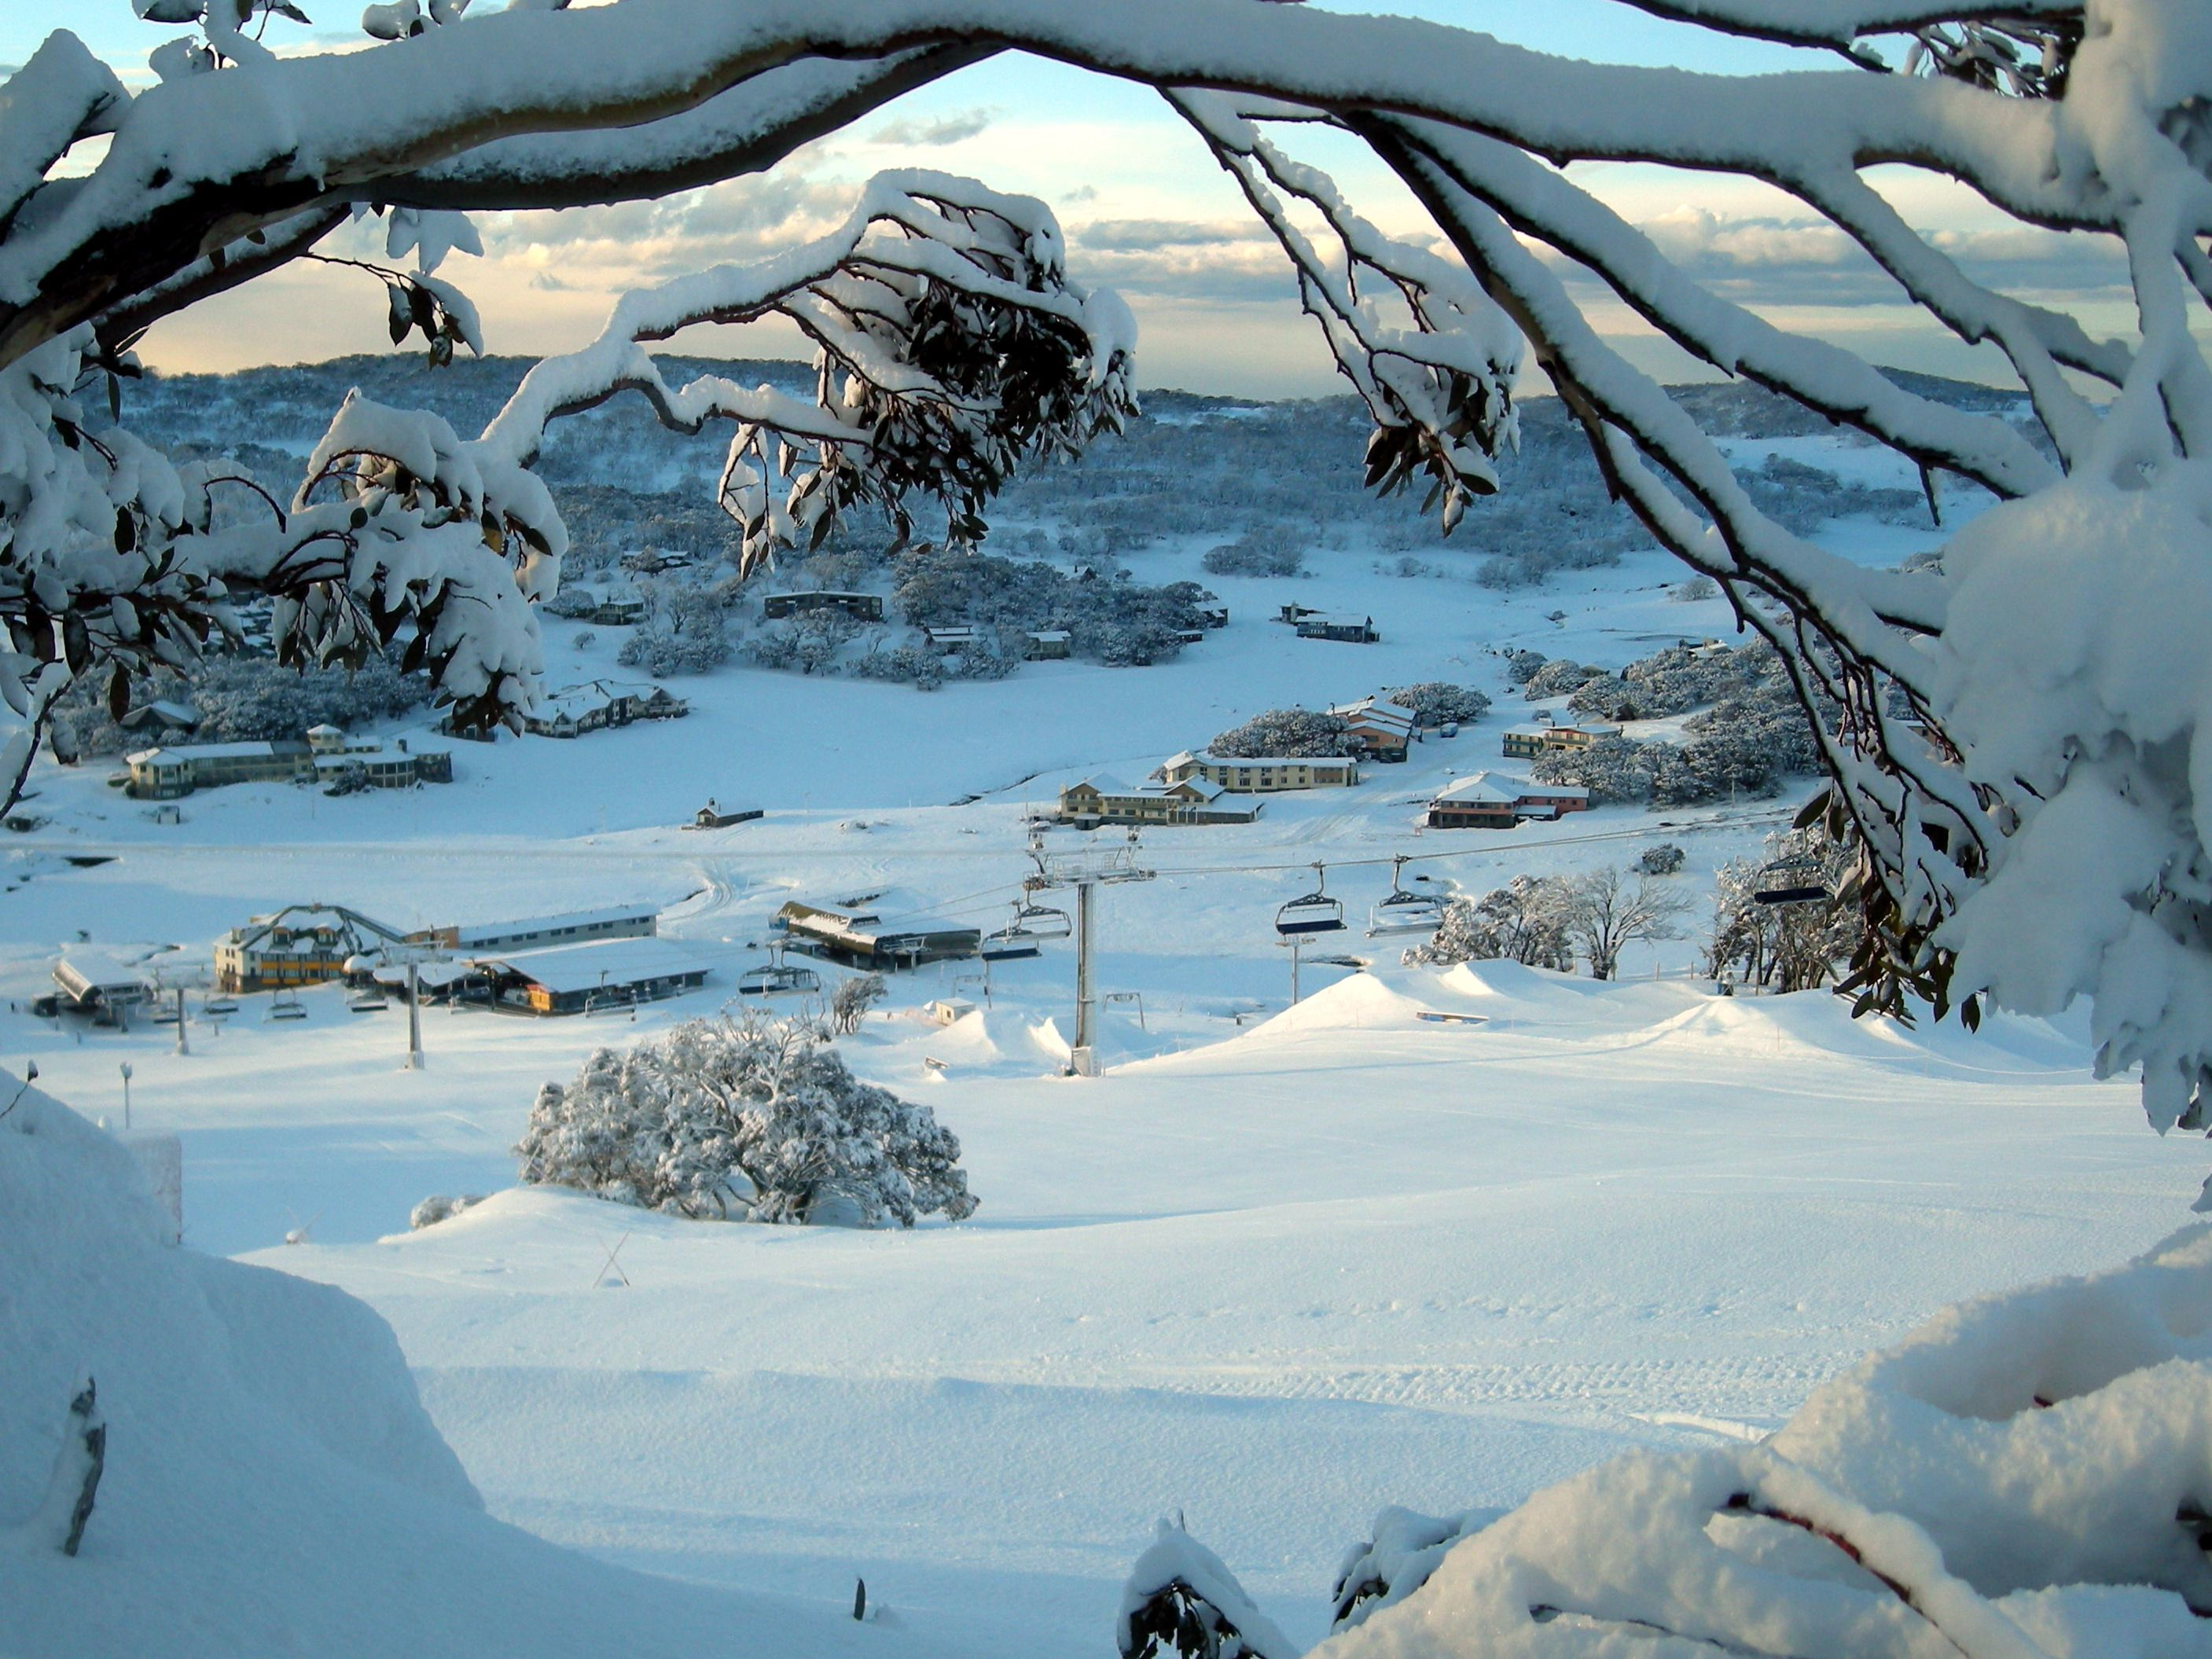 Perisher Blue Ski Fields, New South Wales, Australia - Where I fell in love with snowboarding